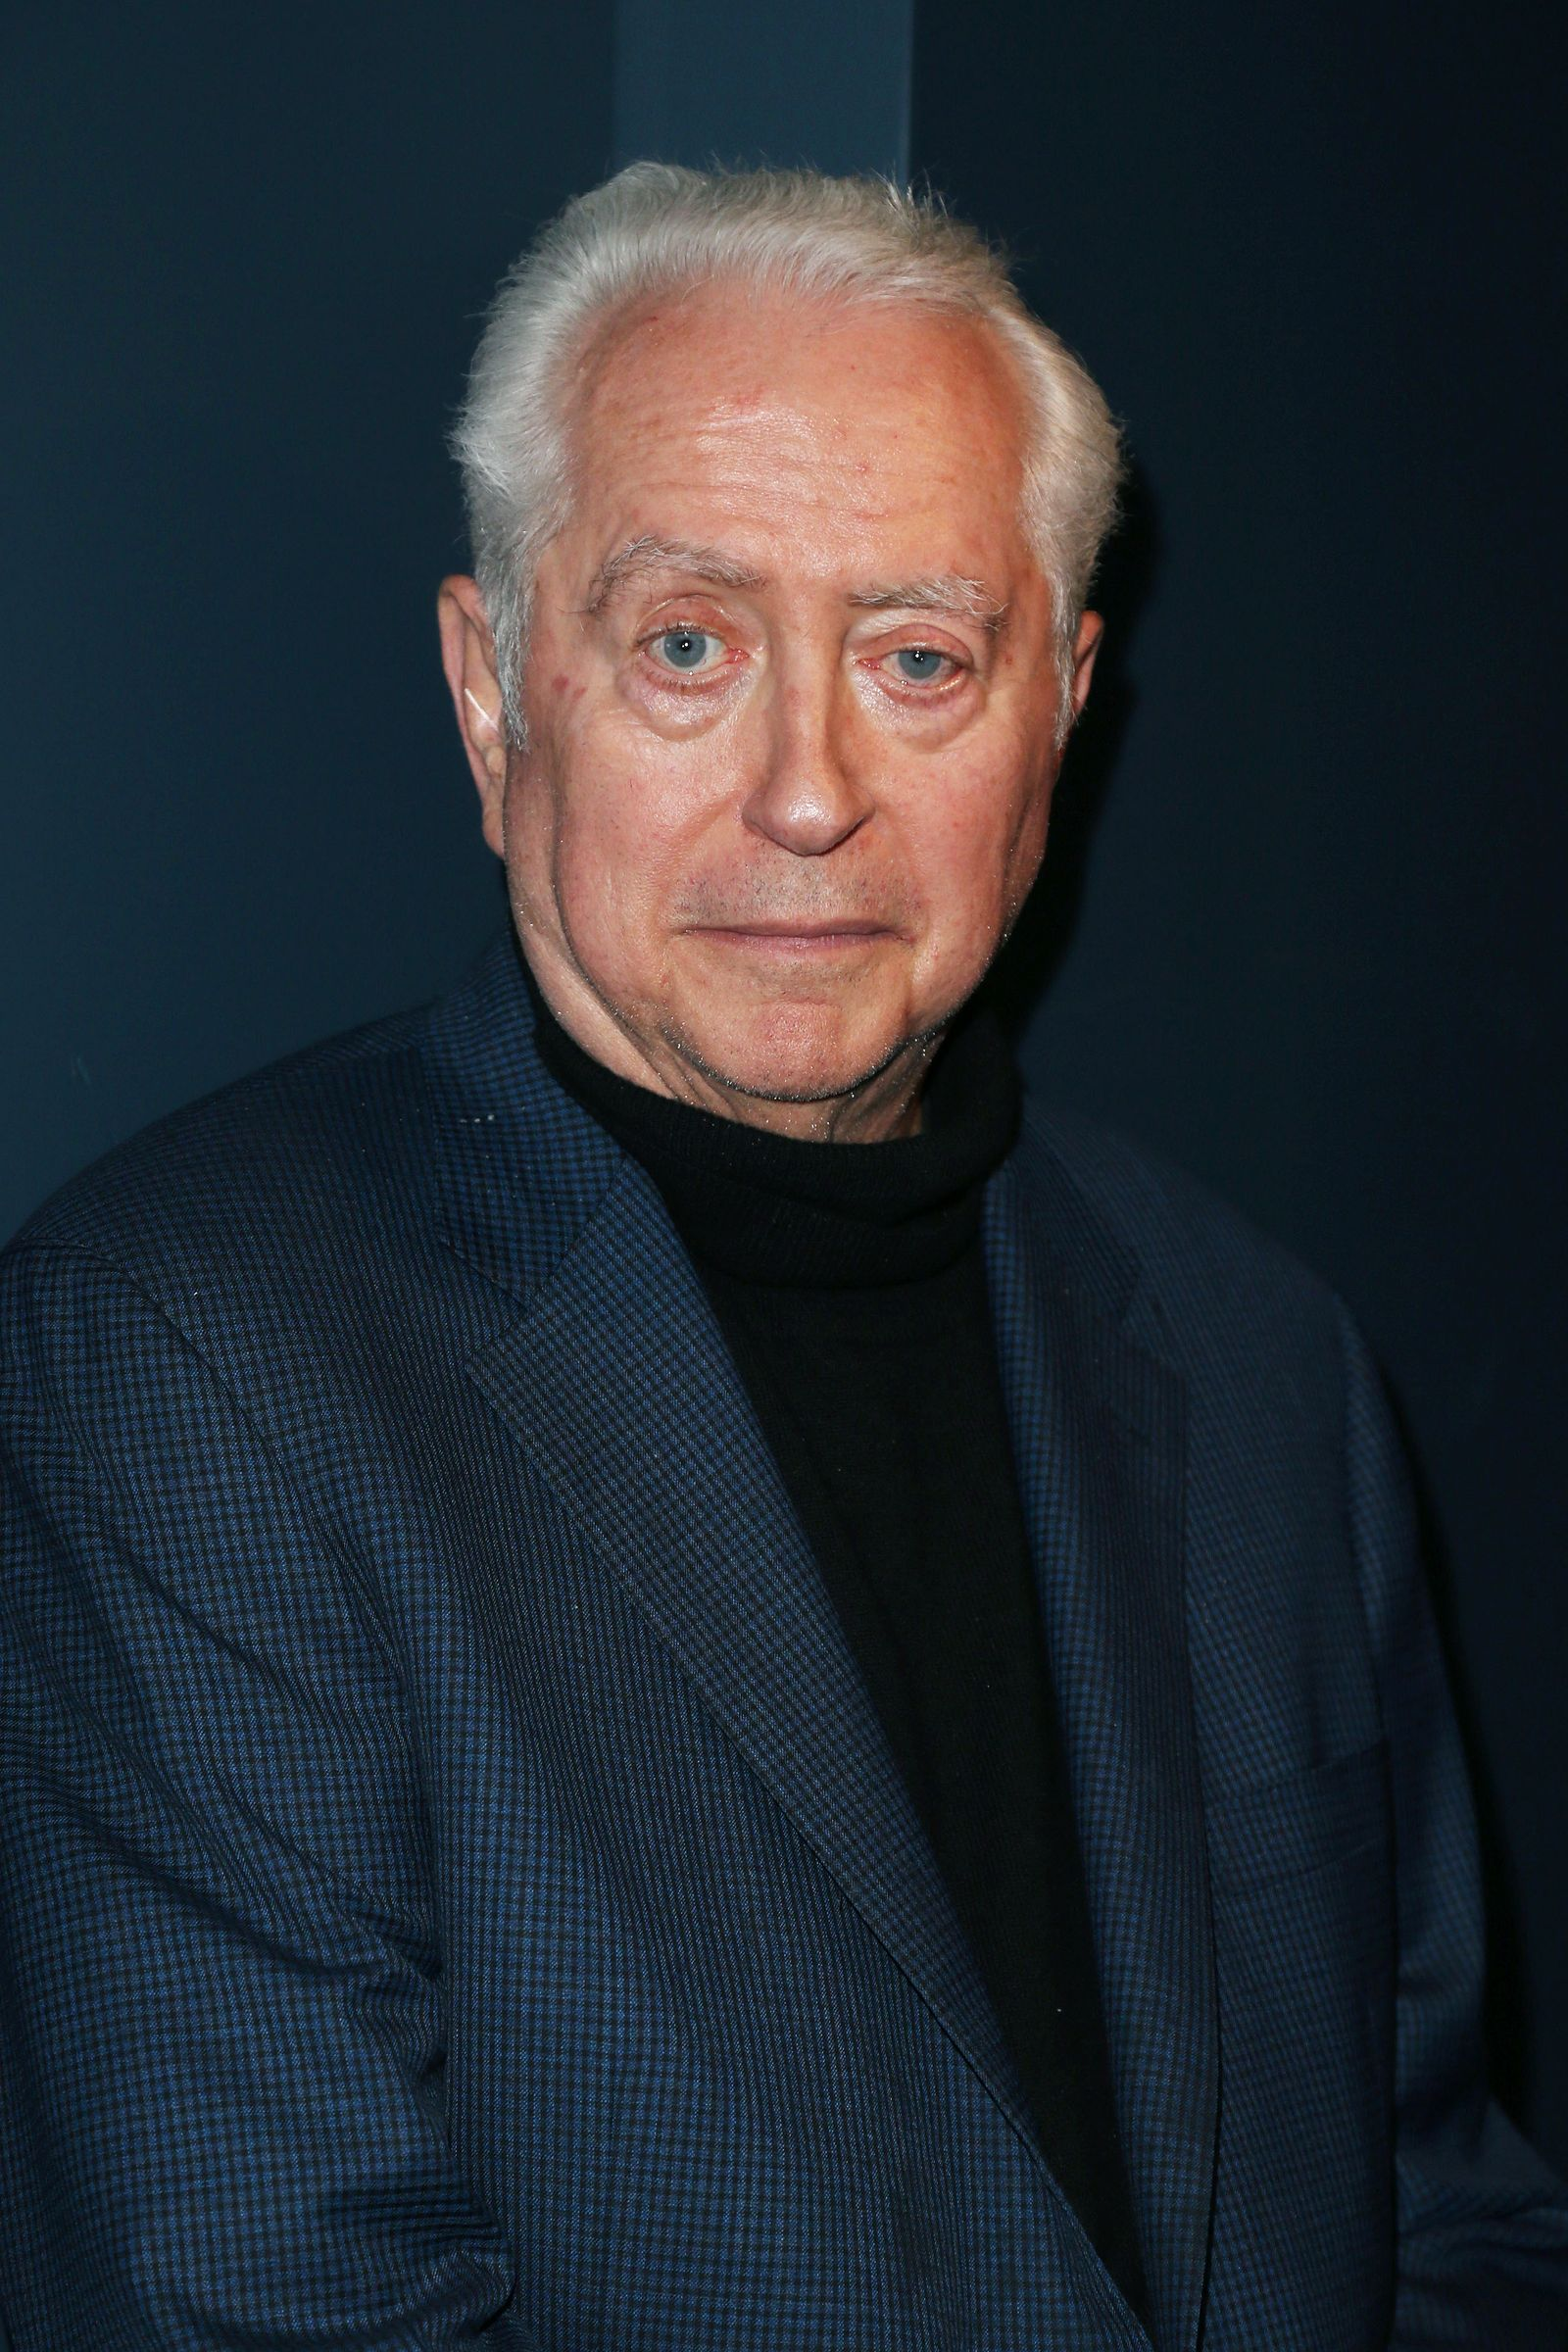 An evening with Robert Downey Sr. in New York